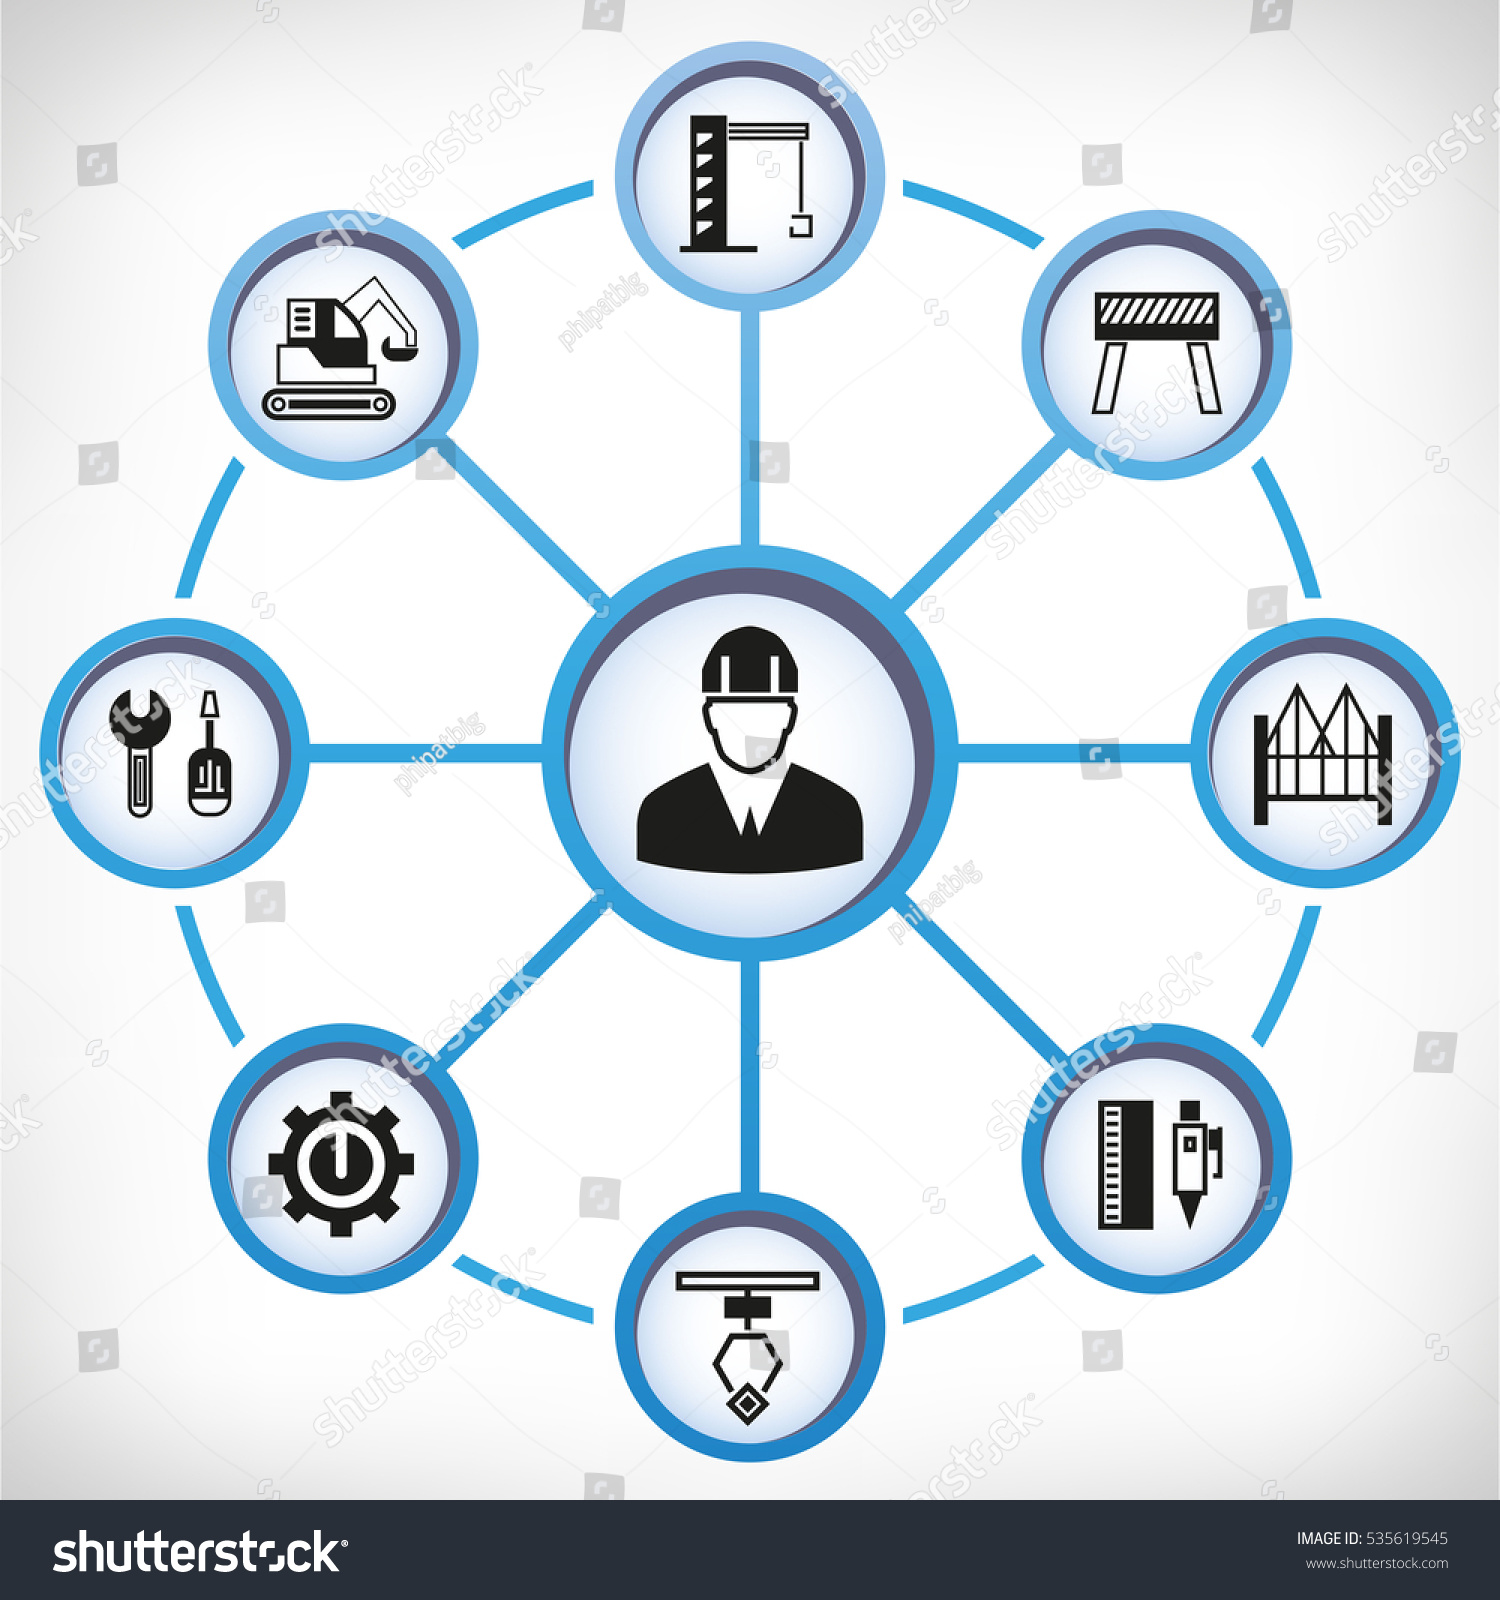 Engineering construction tool icons circle diagram stock vector hd engineering and construction tool icons in circle diagram ccuart Choice Image